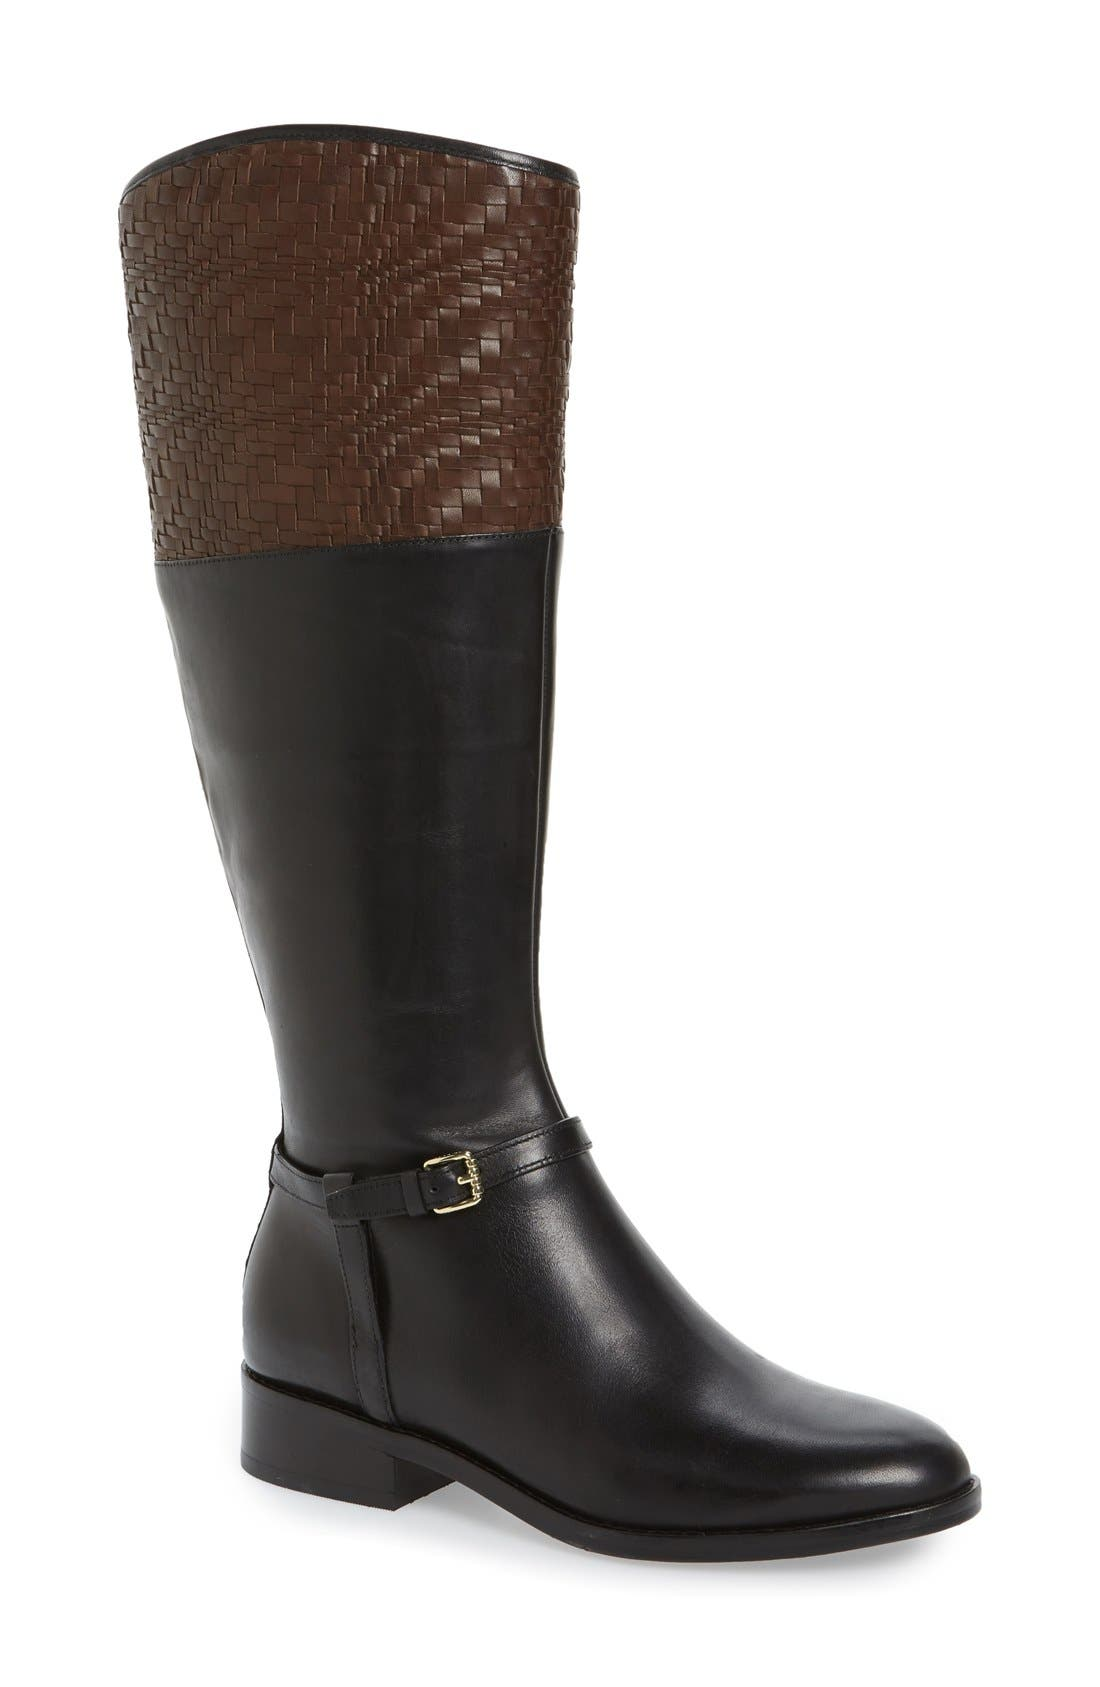 COLE HAAN 'Genevieve' Woven Cuff Riding Boot